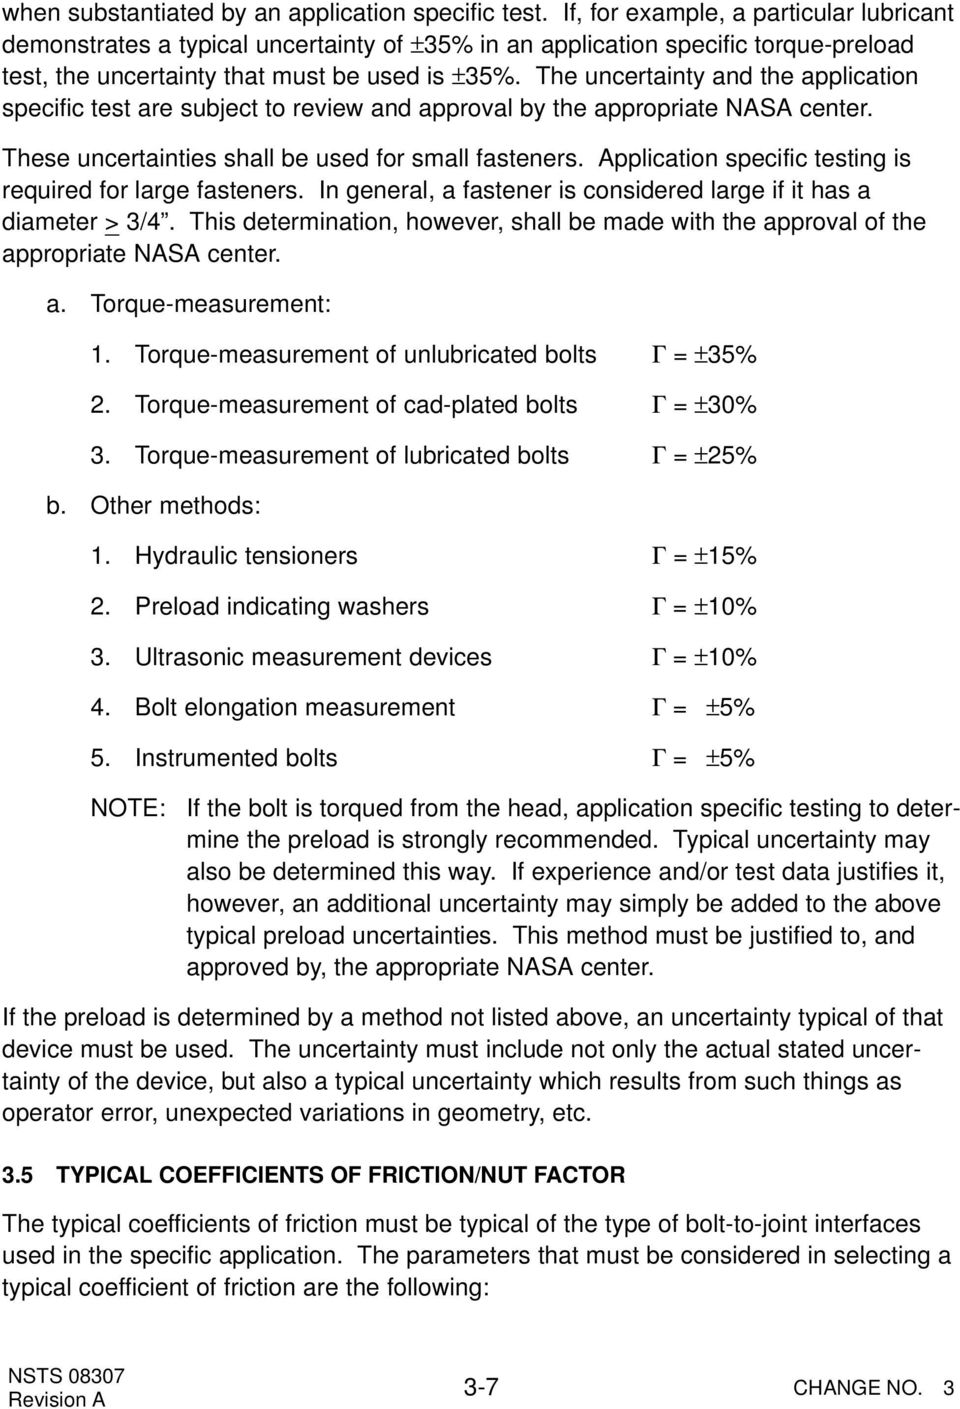 The uncertainty and the application specific test are subject to review and approval by the appropriate NASA center. These uncertainties shall be used for small fasteners.